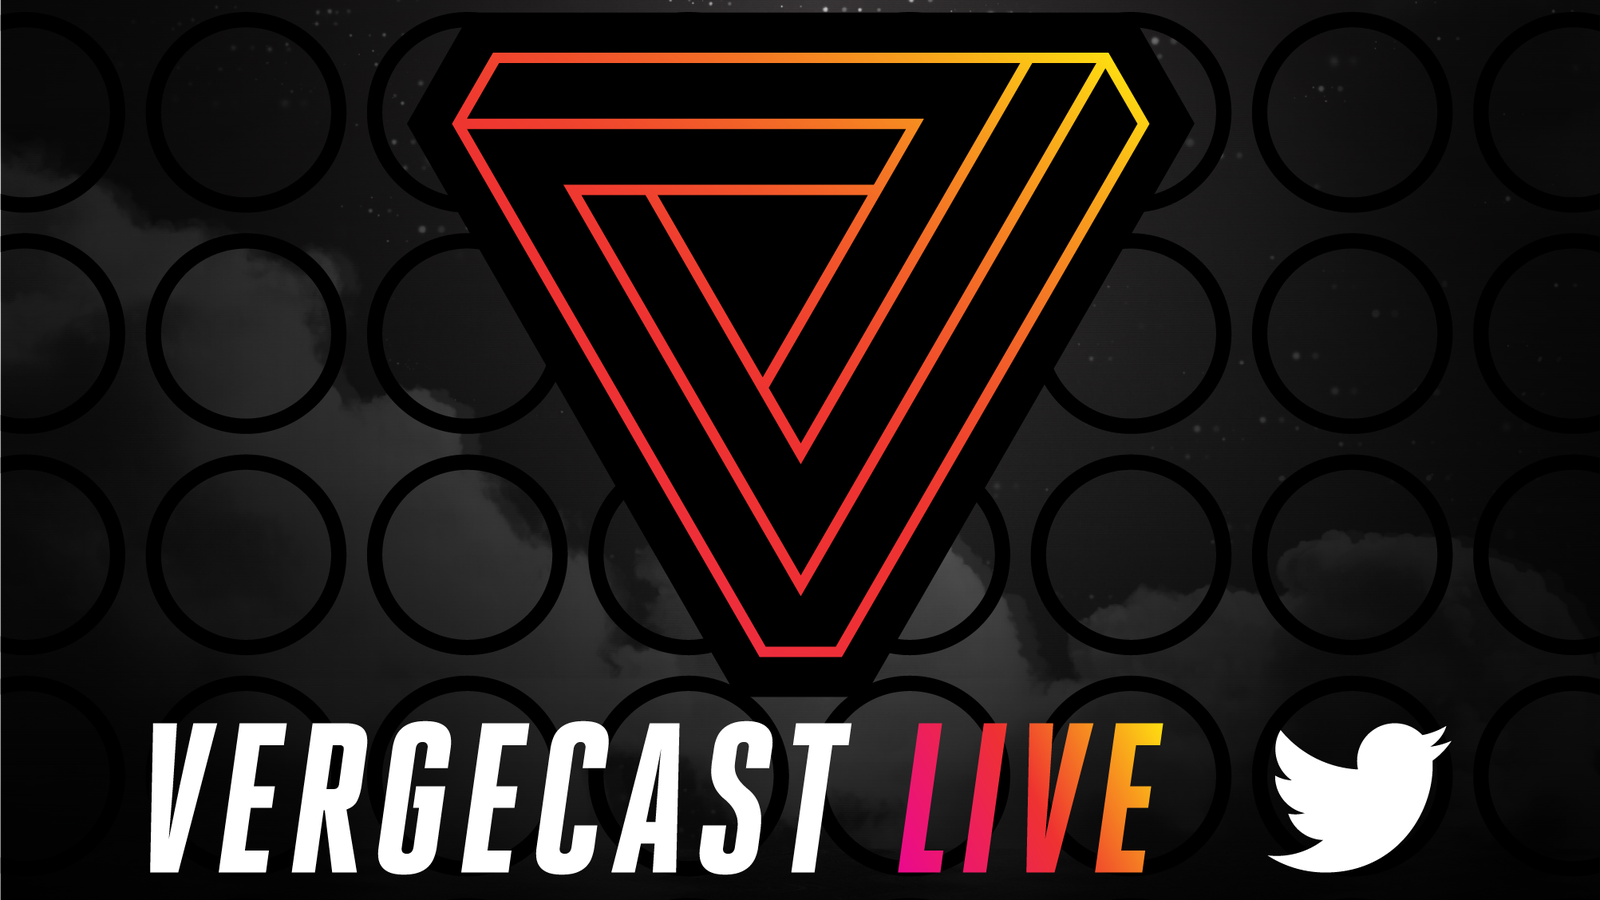 Watch The Vergecast Live at CES 2017 on Twitter starting Wednesday!